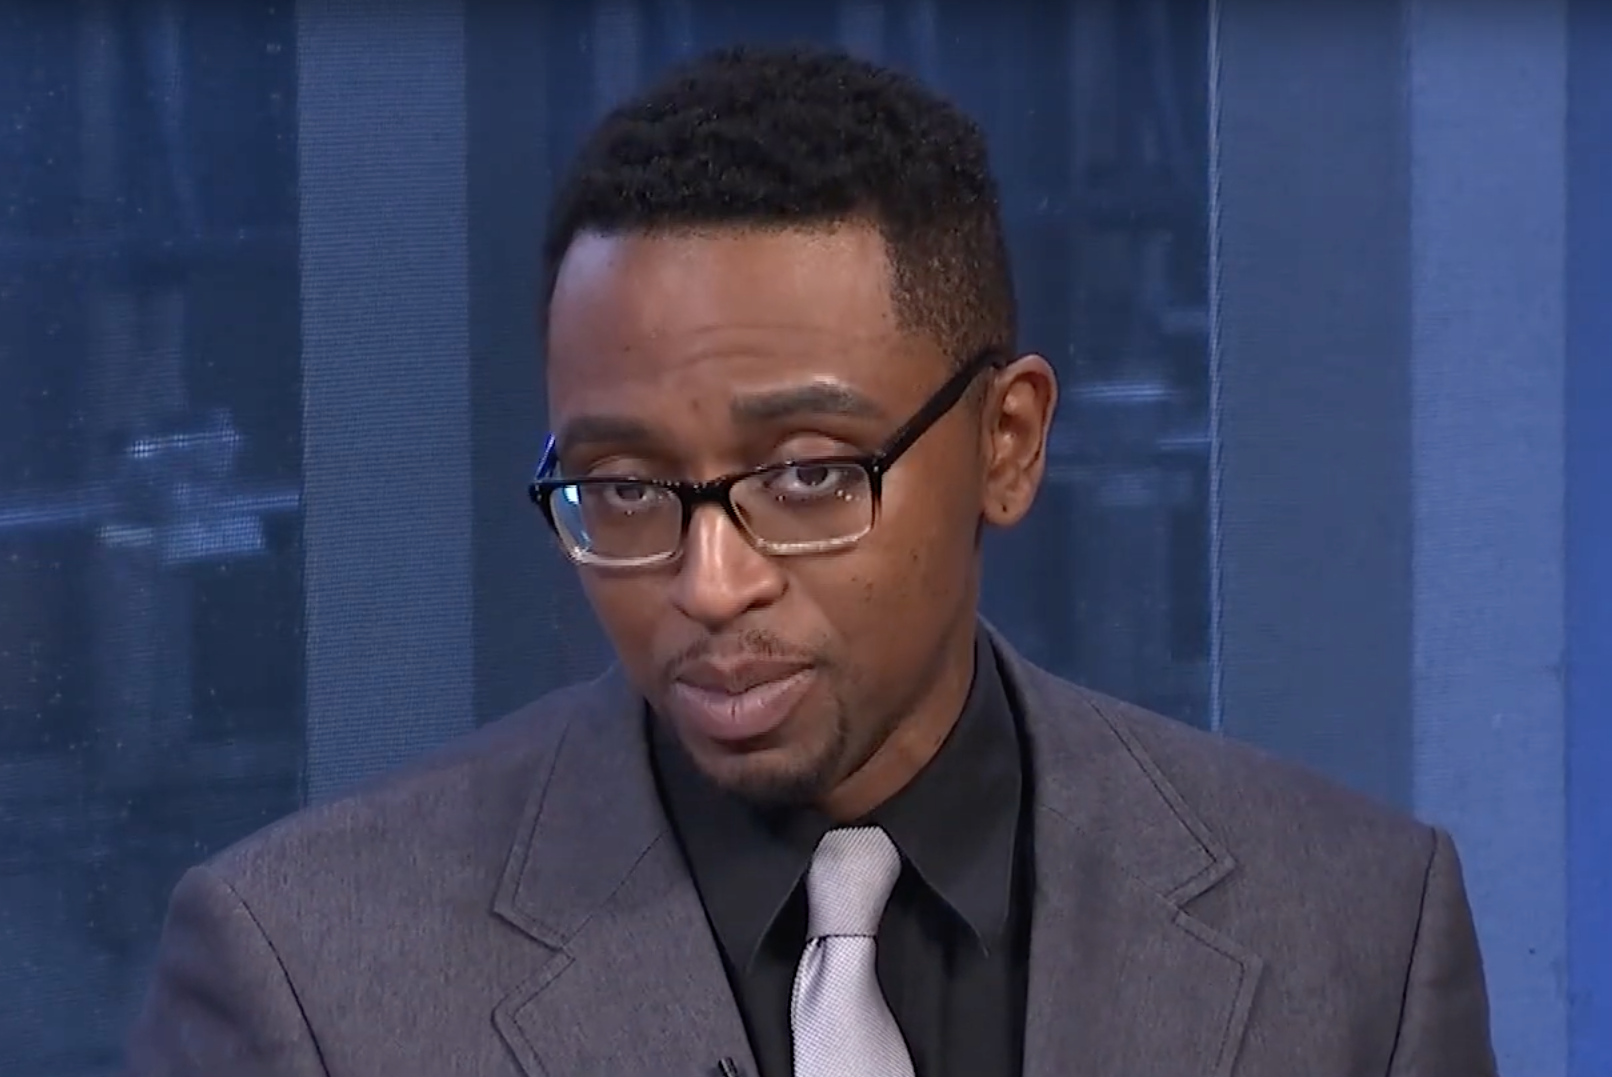 Twitter Suspends Gay Black Conservative After Video To Black Democrats